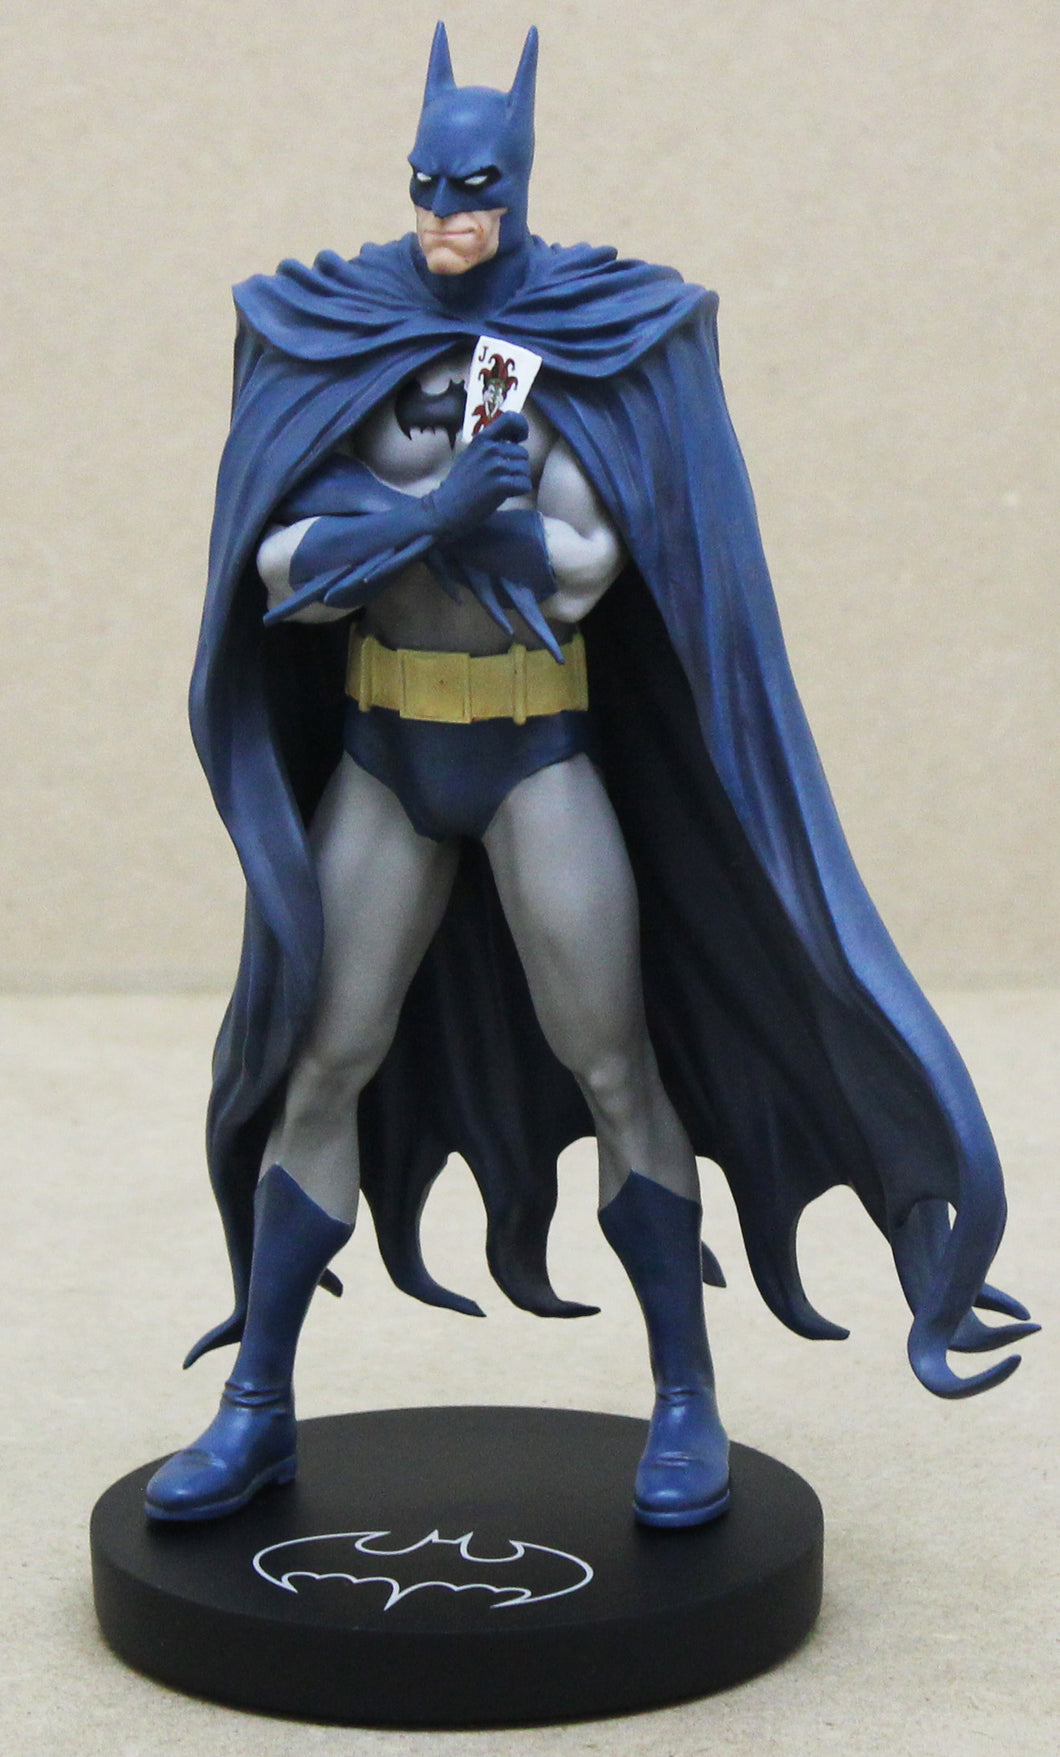 DC Designer Series Statue Batman by Brian Bolland